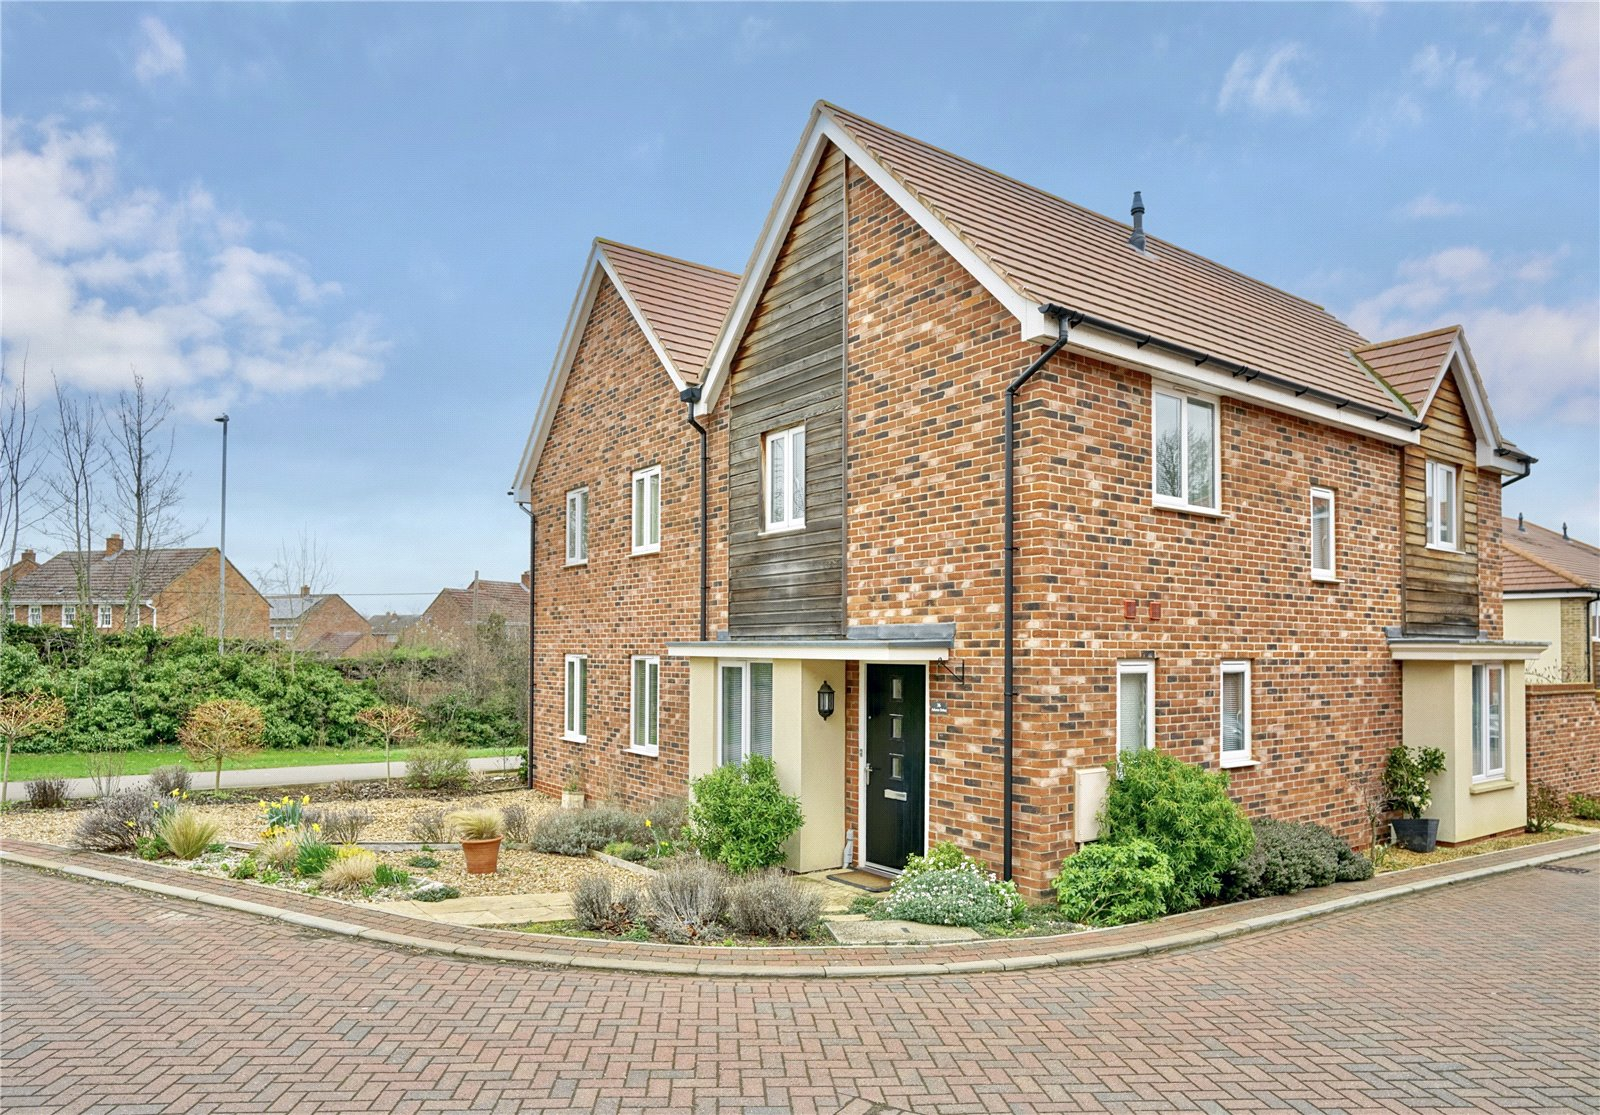 3 bed house for sale in St. Ives, PE27 6TD  - Property Image 1